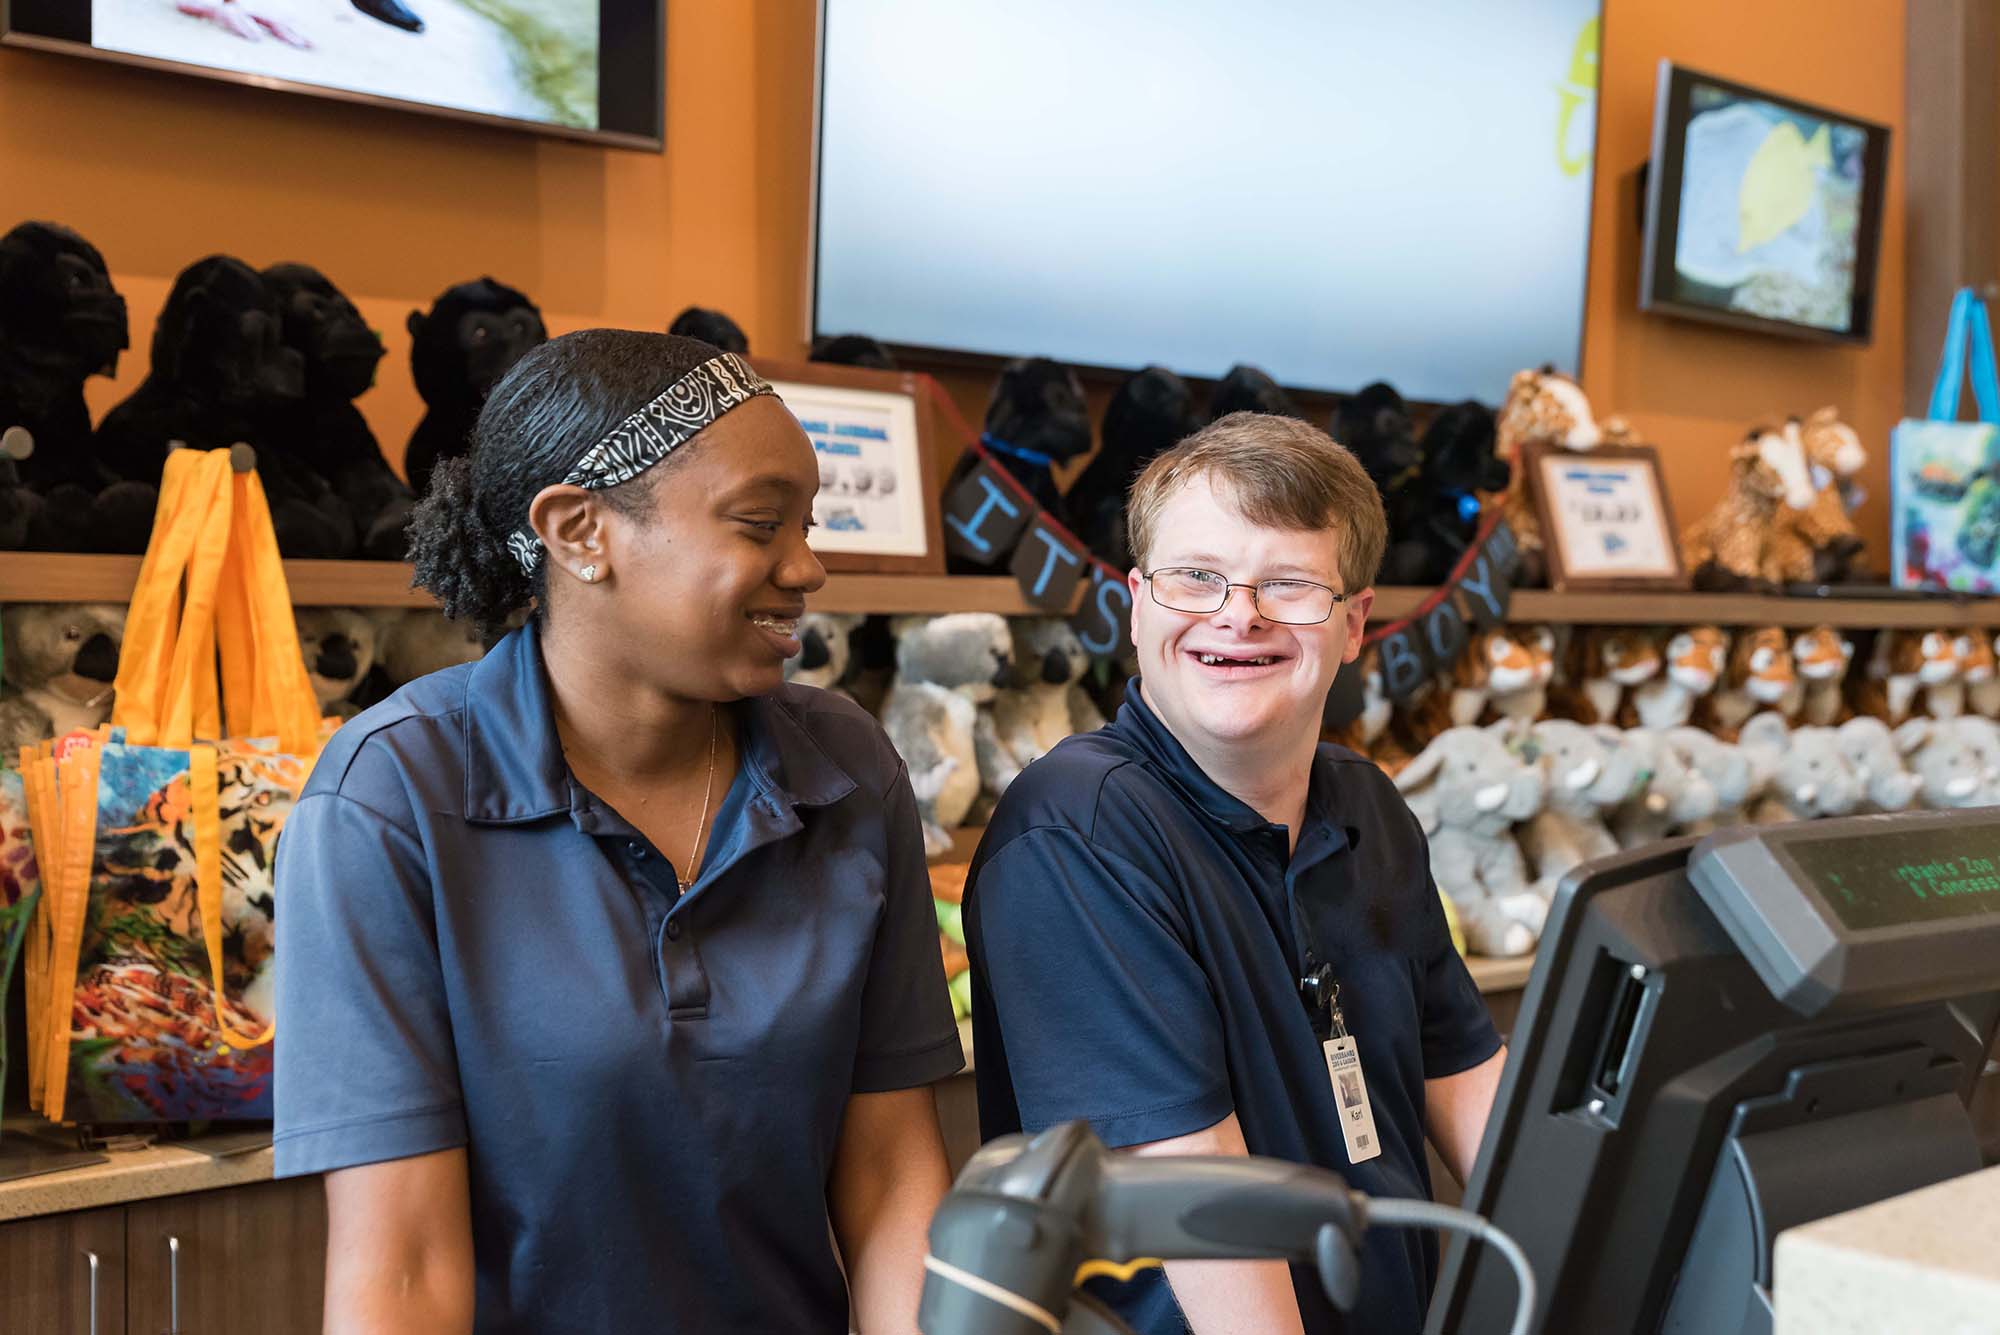 A Black woman and a white man with down syndrome wear blue collared shirts and stand behind the cash register, smiling.